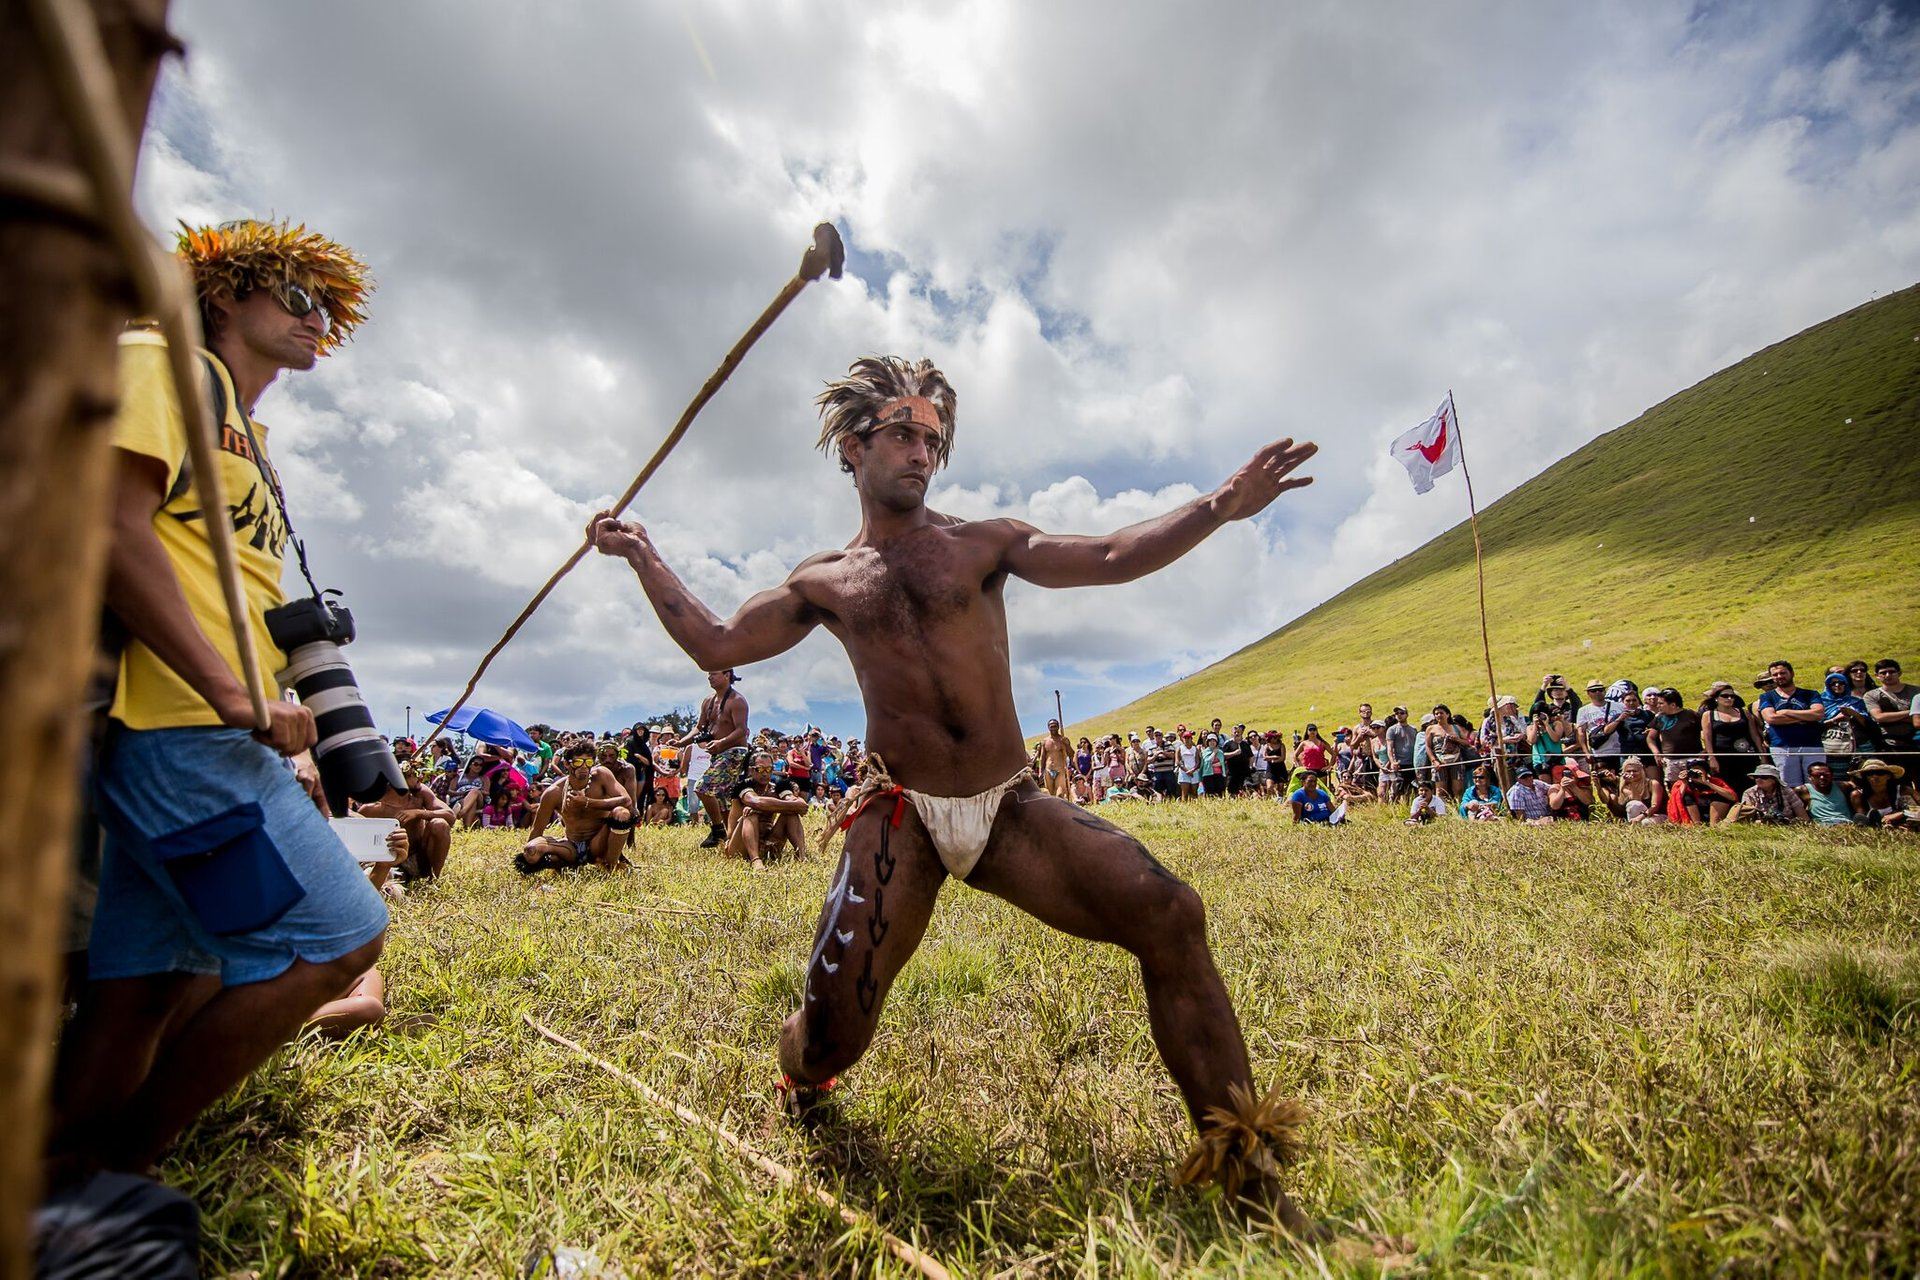 Tapati Rapa Nui in Easter Island 2019 - Best Time